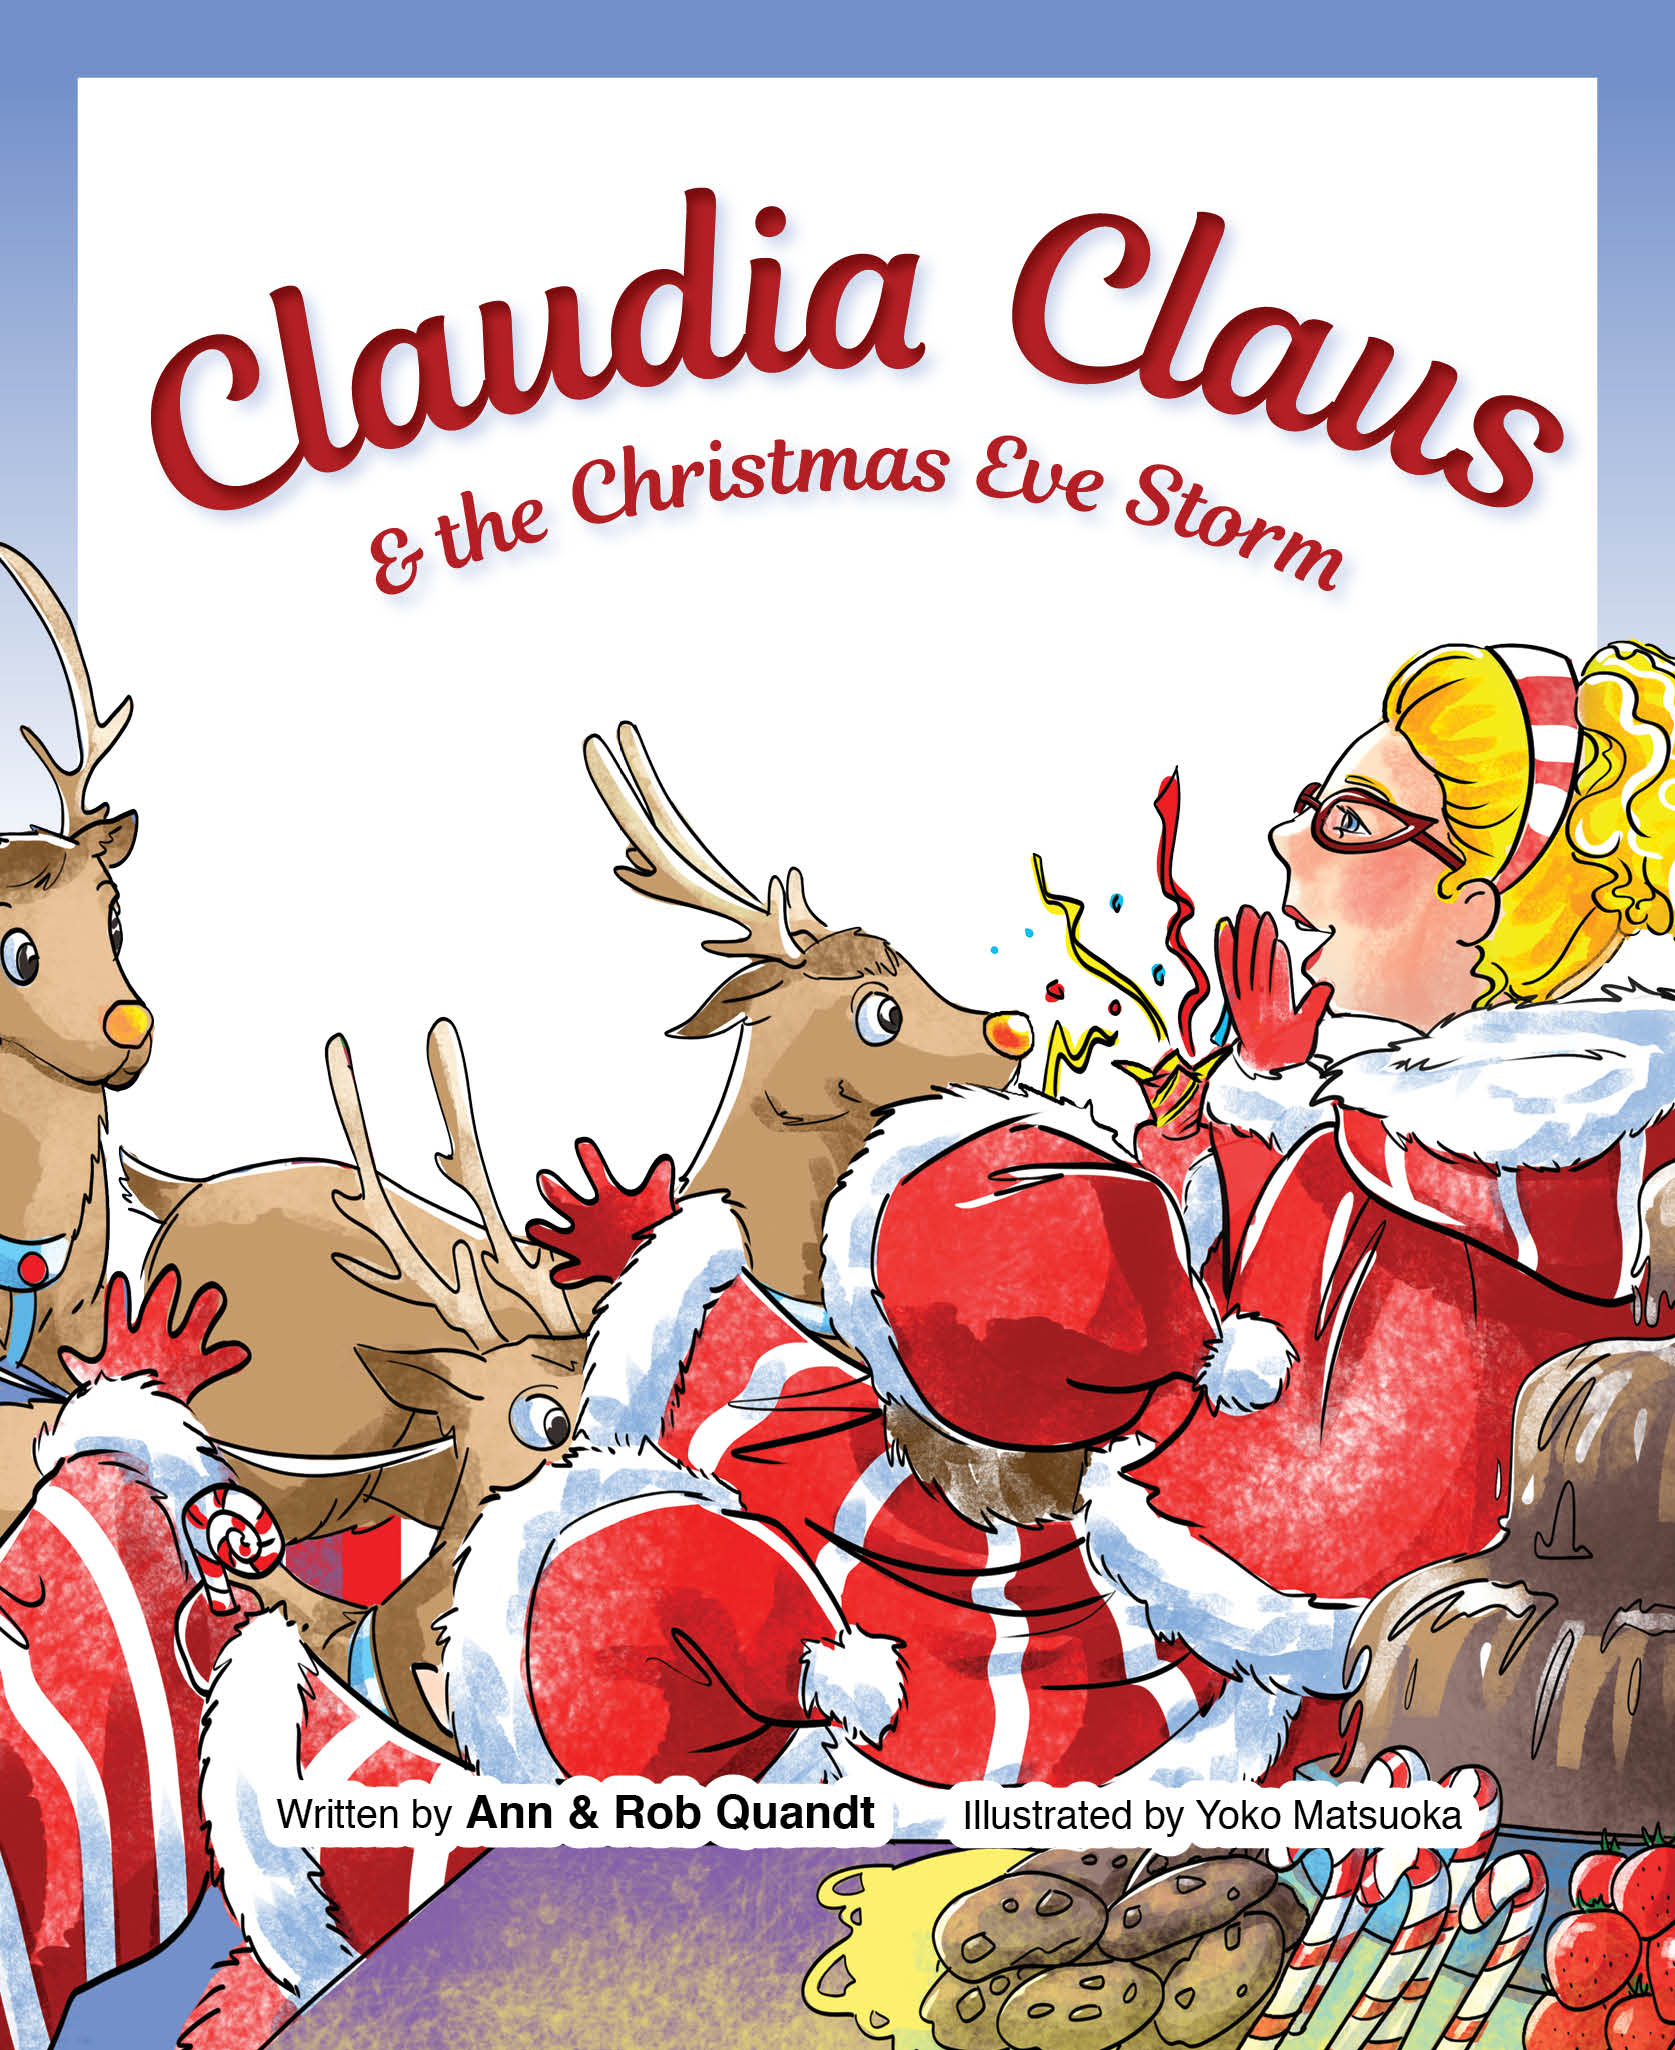 The Christmas Clause.Claudia Claus The Christmas Eve Storm